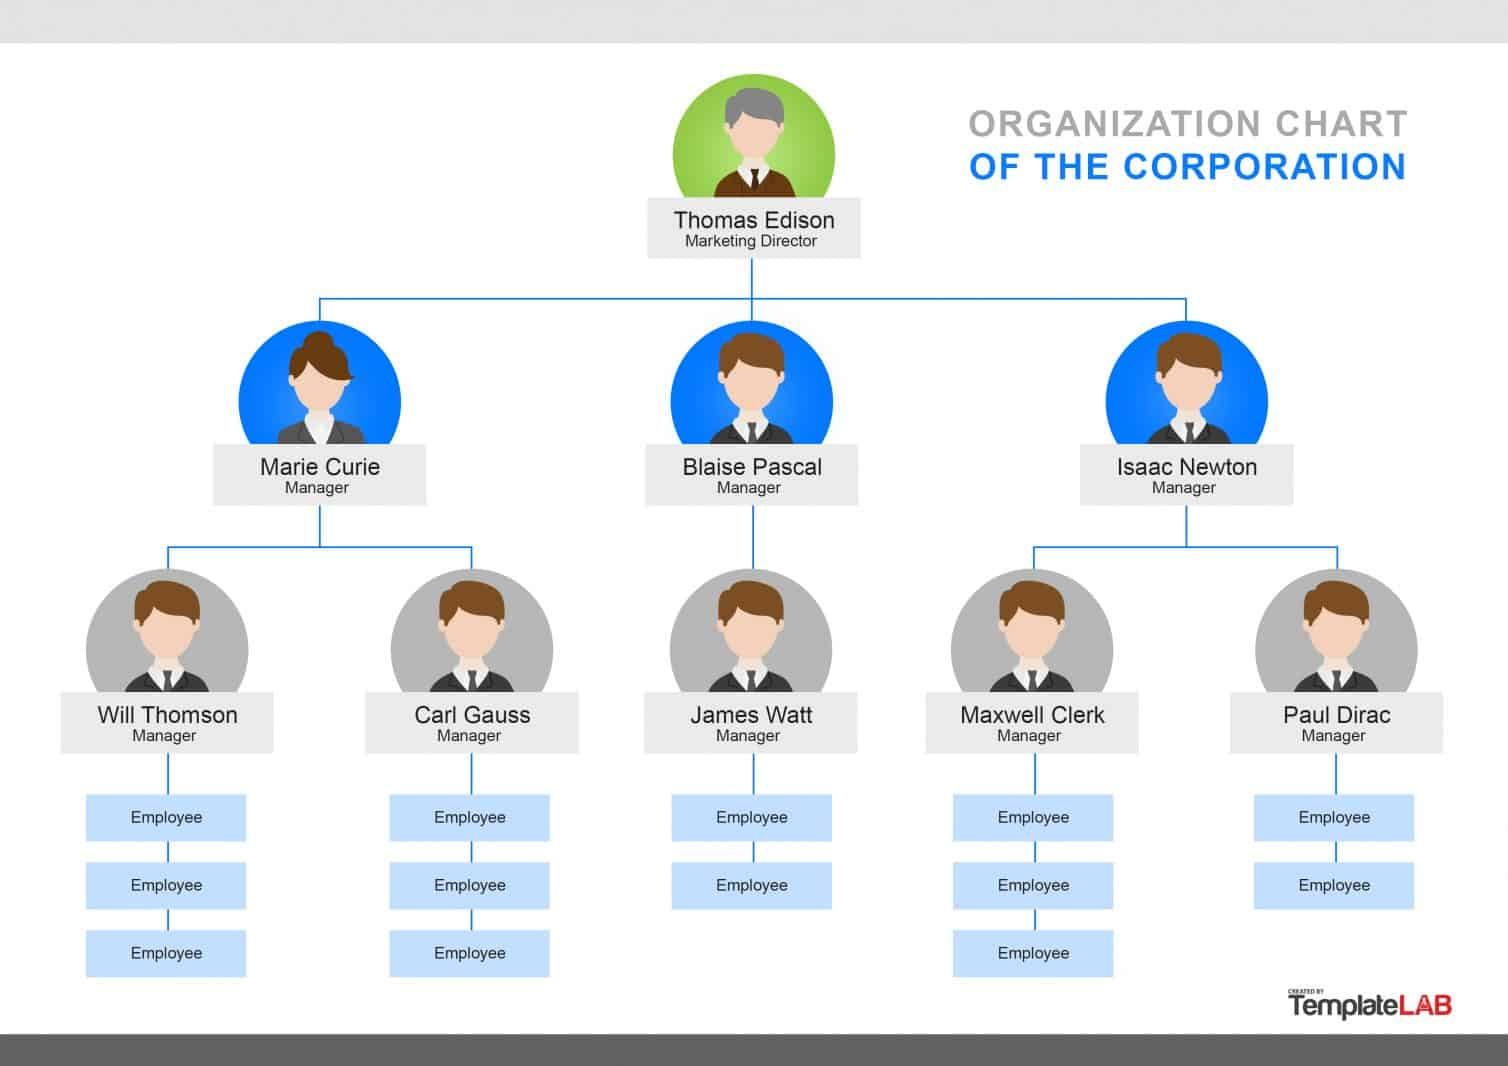 40 Organizational Chart Templates Word Excel Powerpoint For Word Org Chart Template Cumed Org Organization Chart Organizational Chart Org Chart